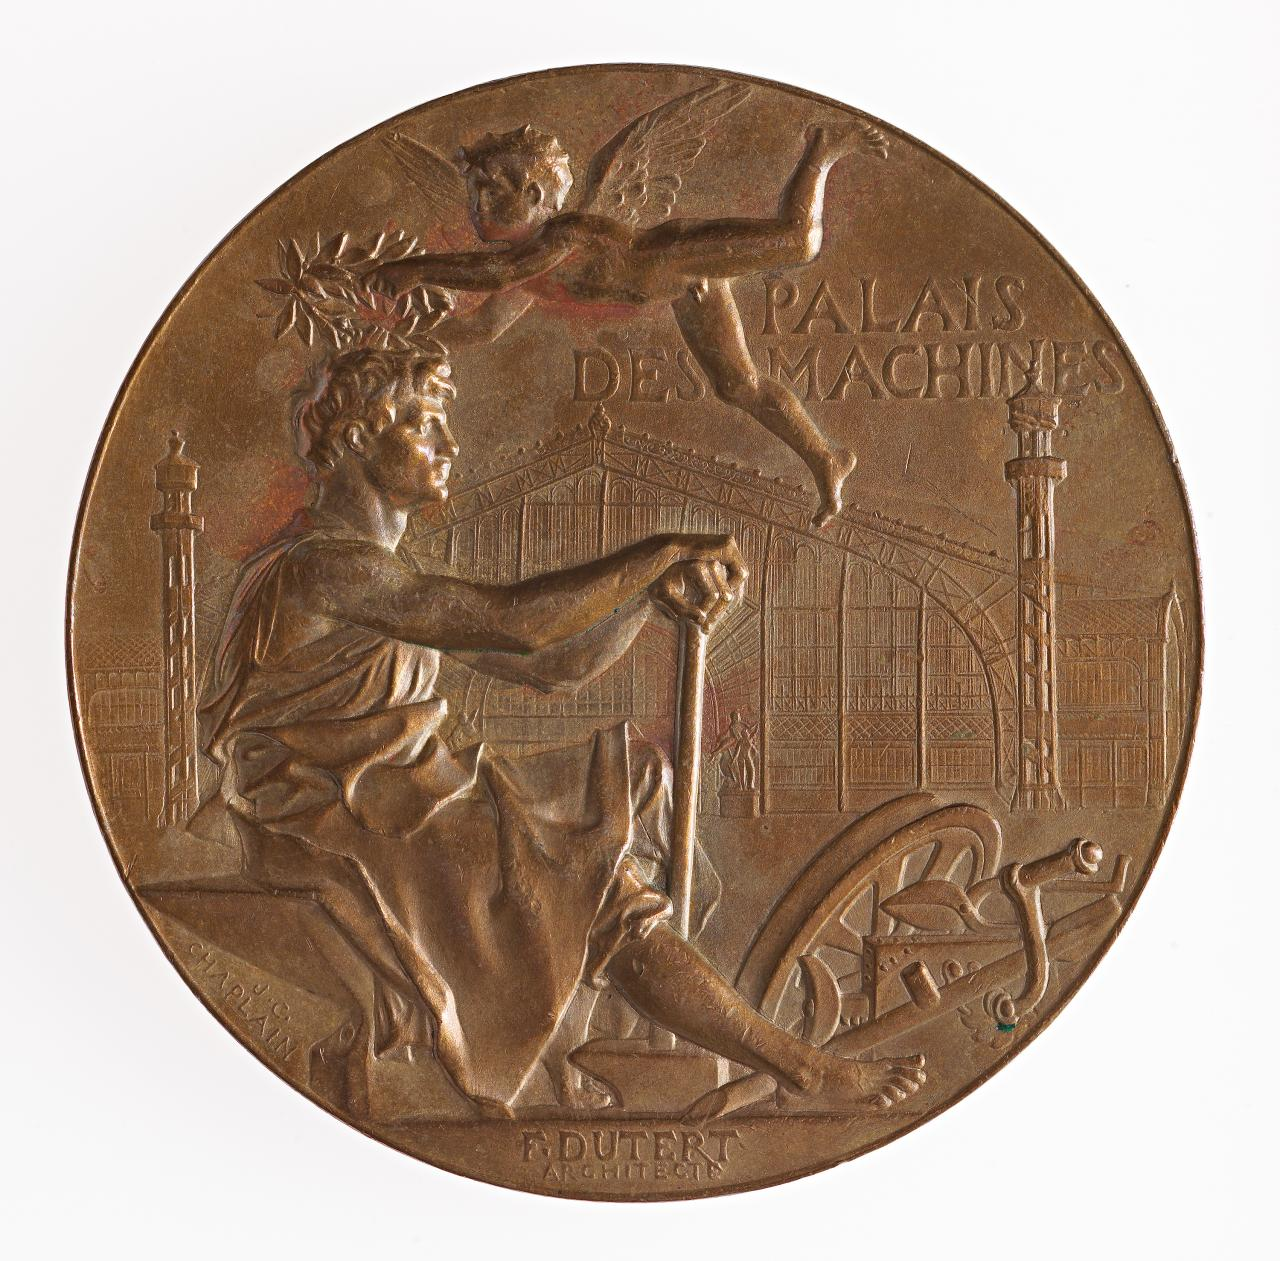 Universal Exposition, Paris. Press Committee, Osiris Prize, prize medal